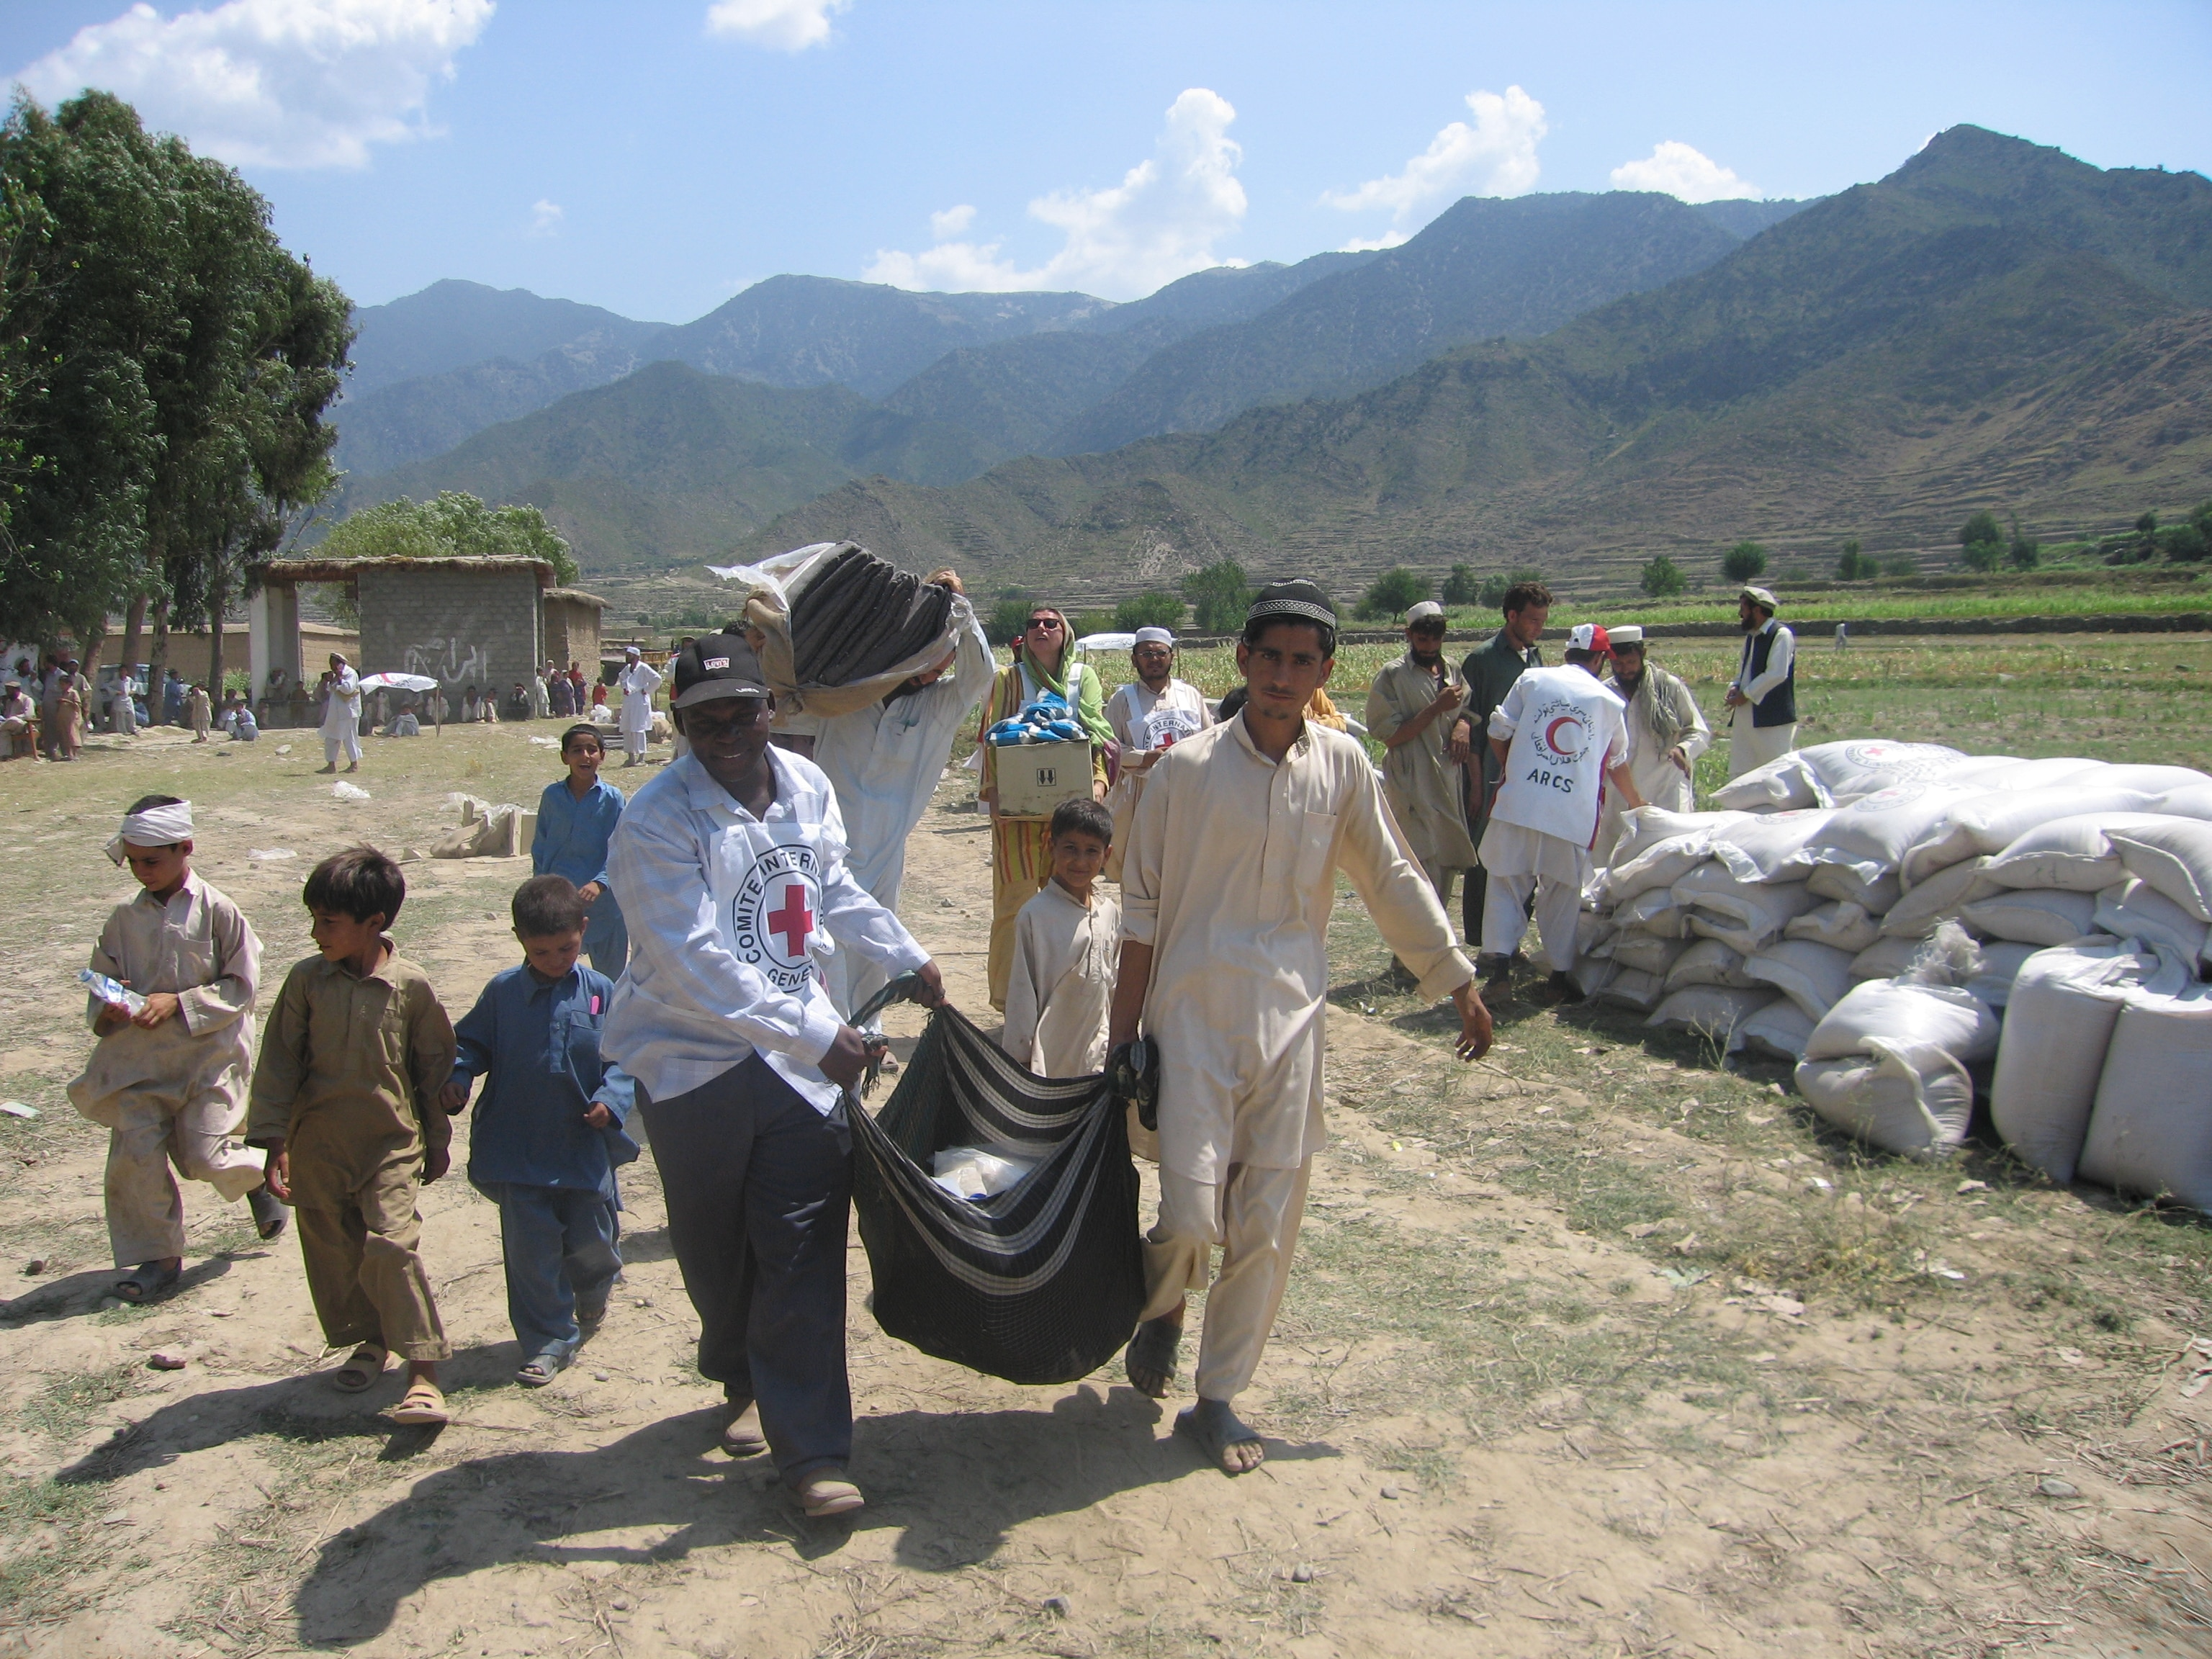 Shegal district, Kunar province, Afghanistan. ICRC staff distribute food and emergency household items to displaced people. (©ICRC/M. Naseem Sahar)